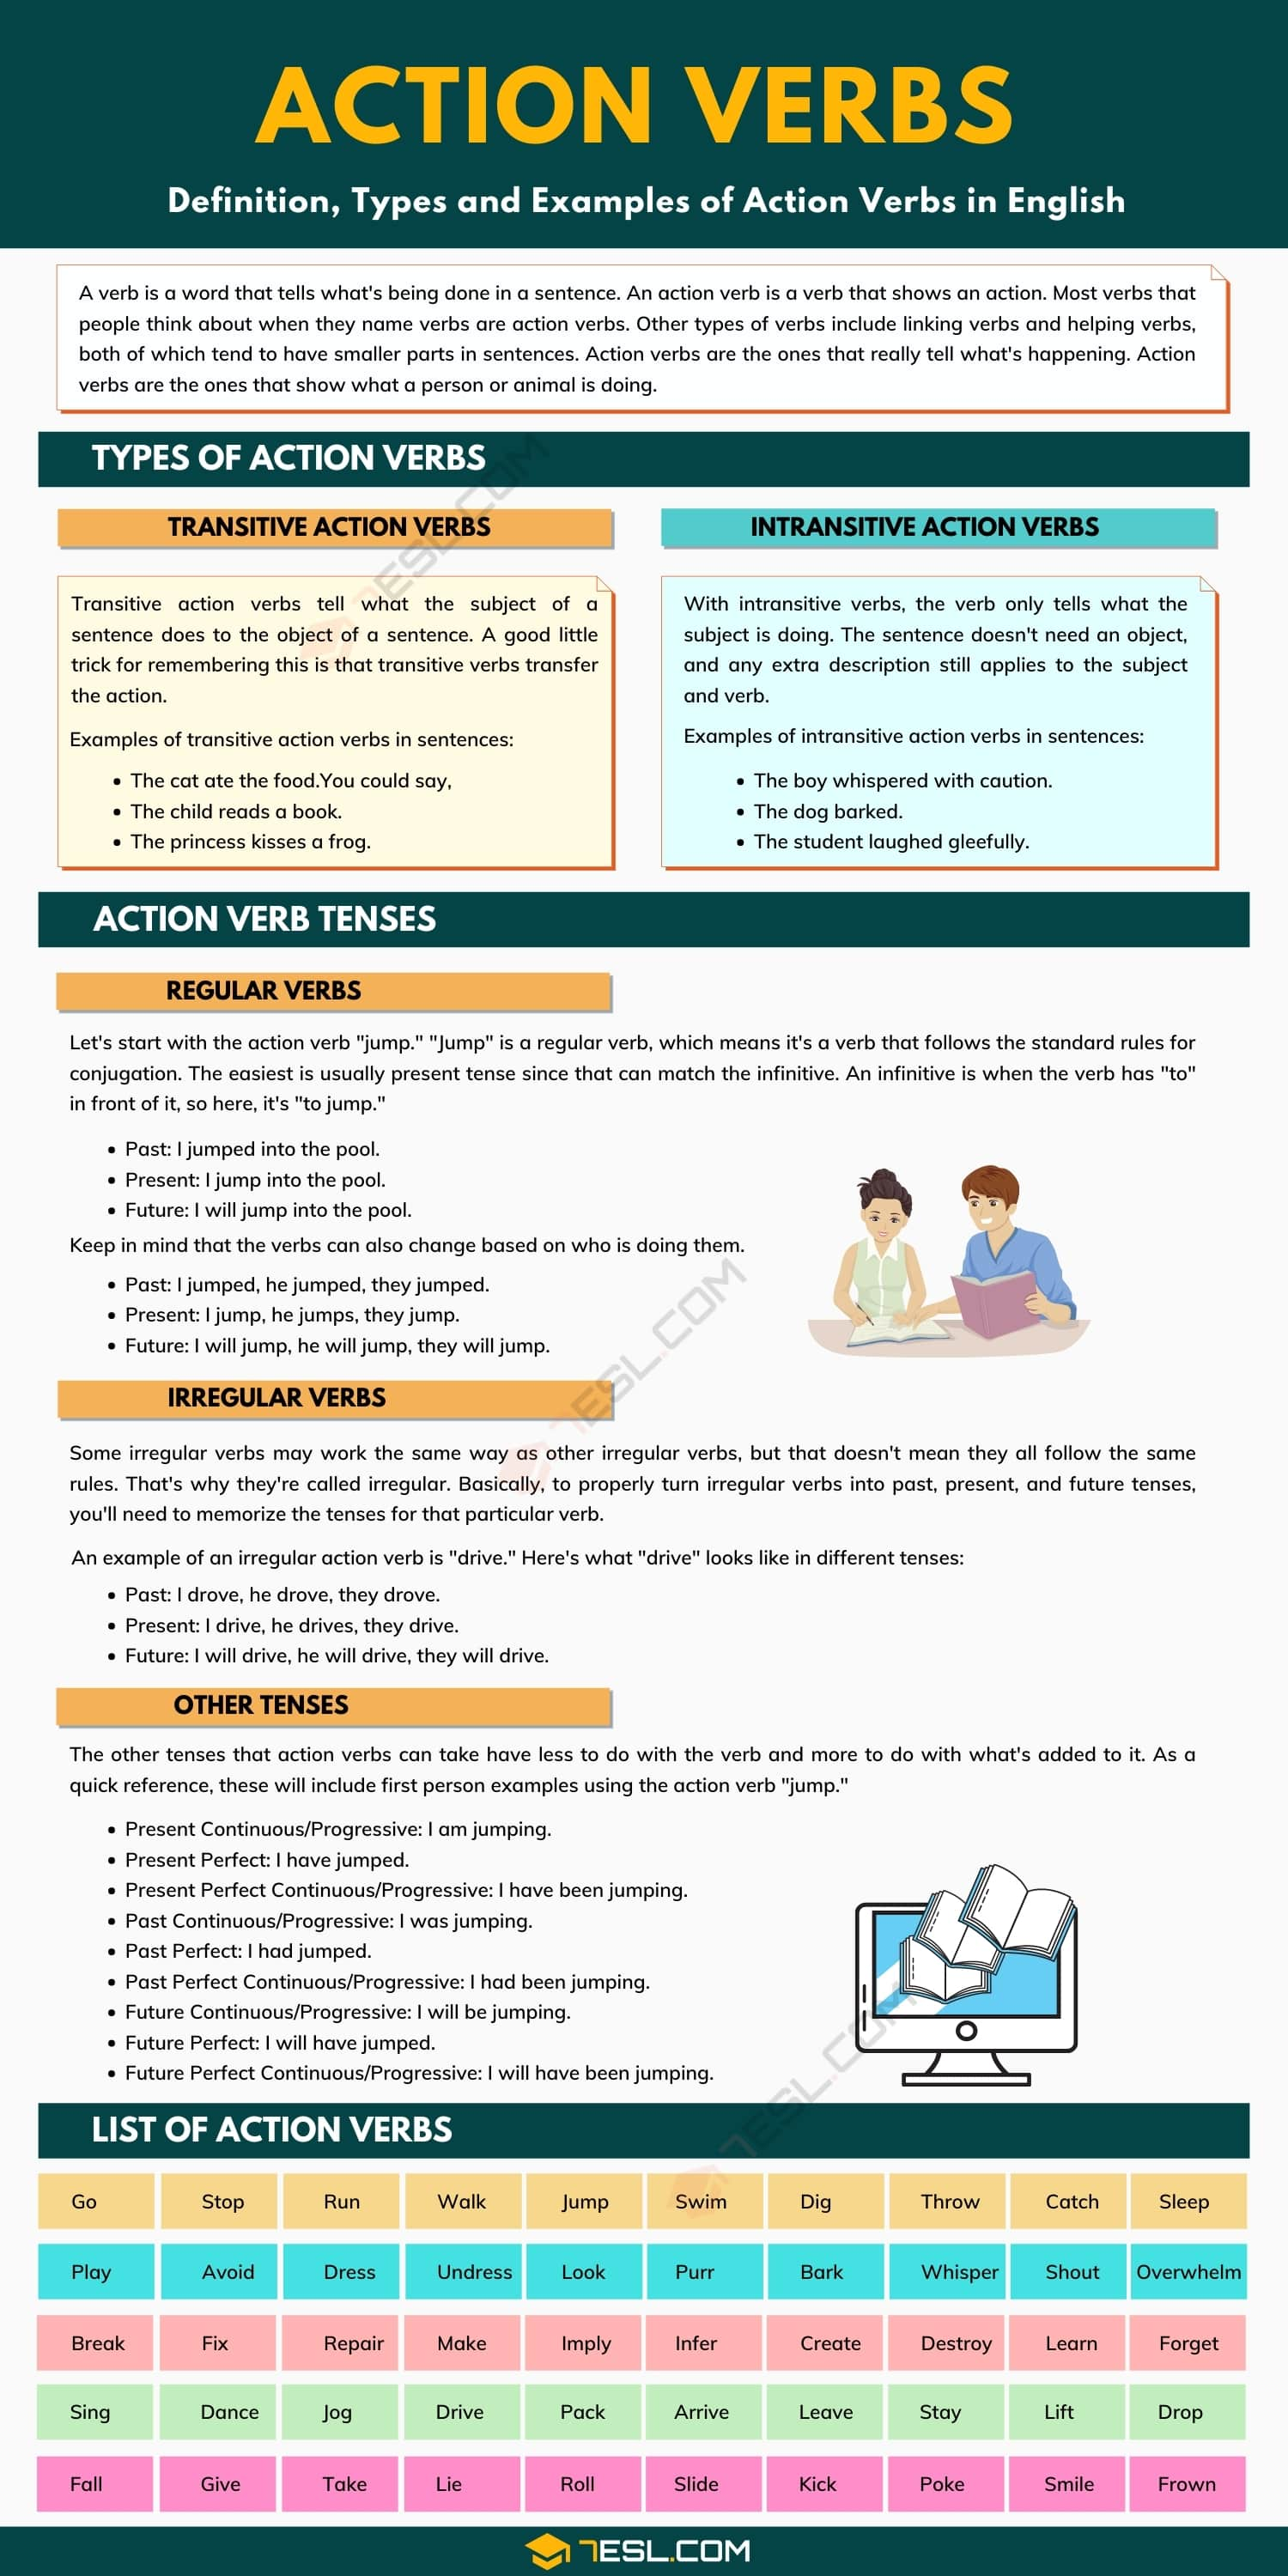 Action Verbs | Definition, Types and Useful List of Action Verbs in English